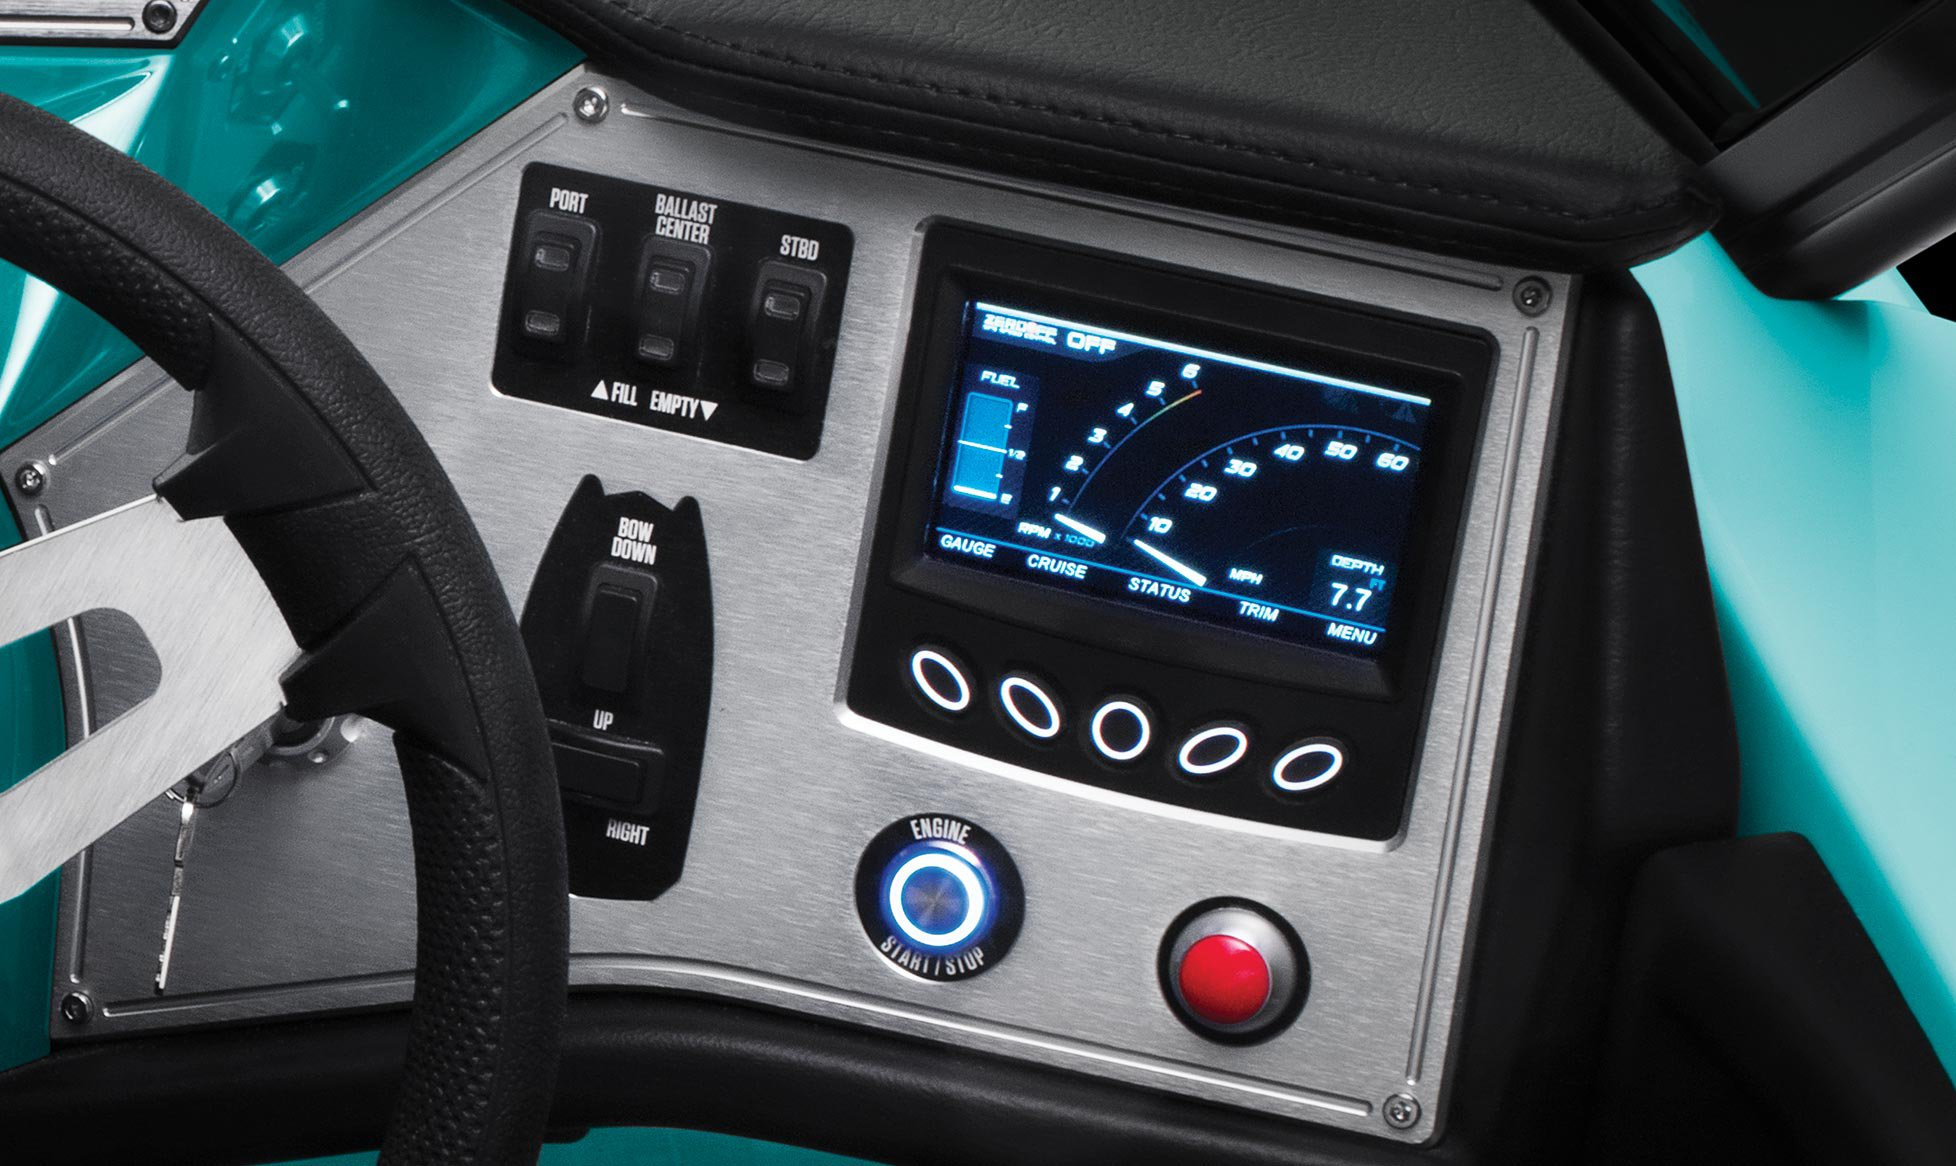 Mastercraft NXT 20 NICELY EQUIPPED - NXT20_11_4.3-color-screen-2